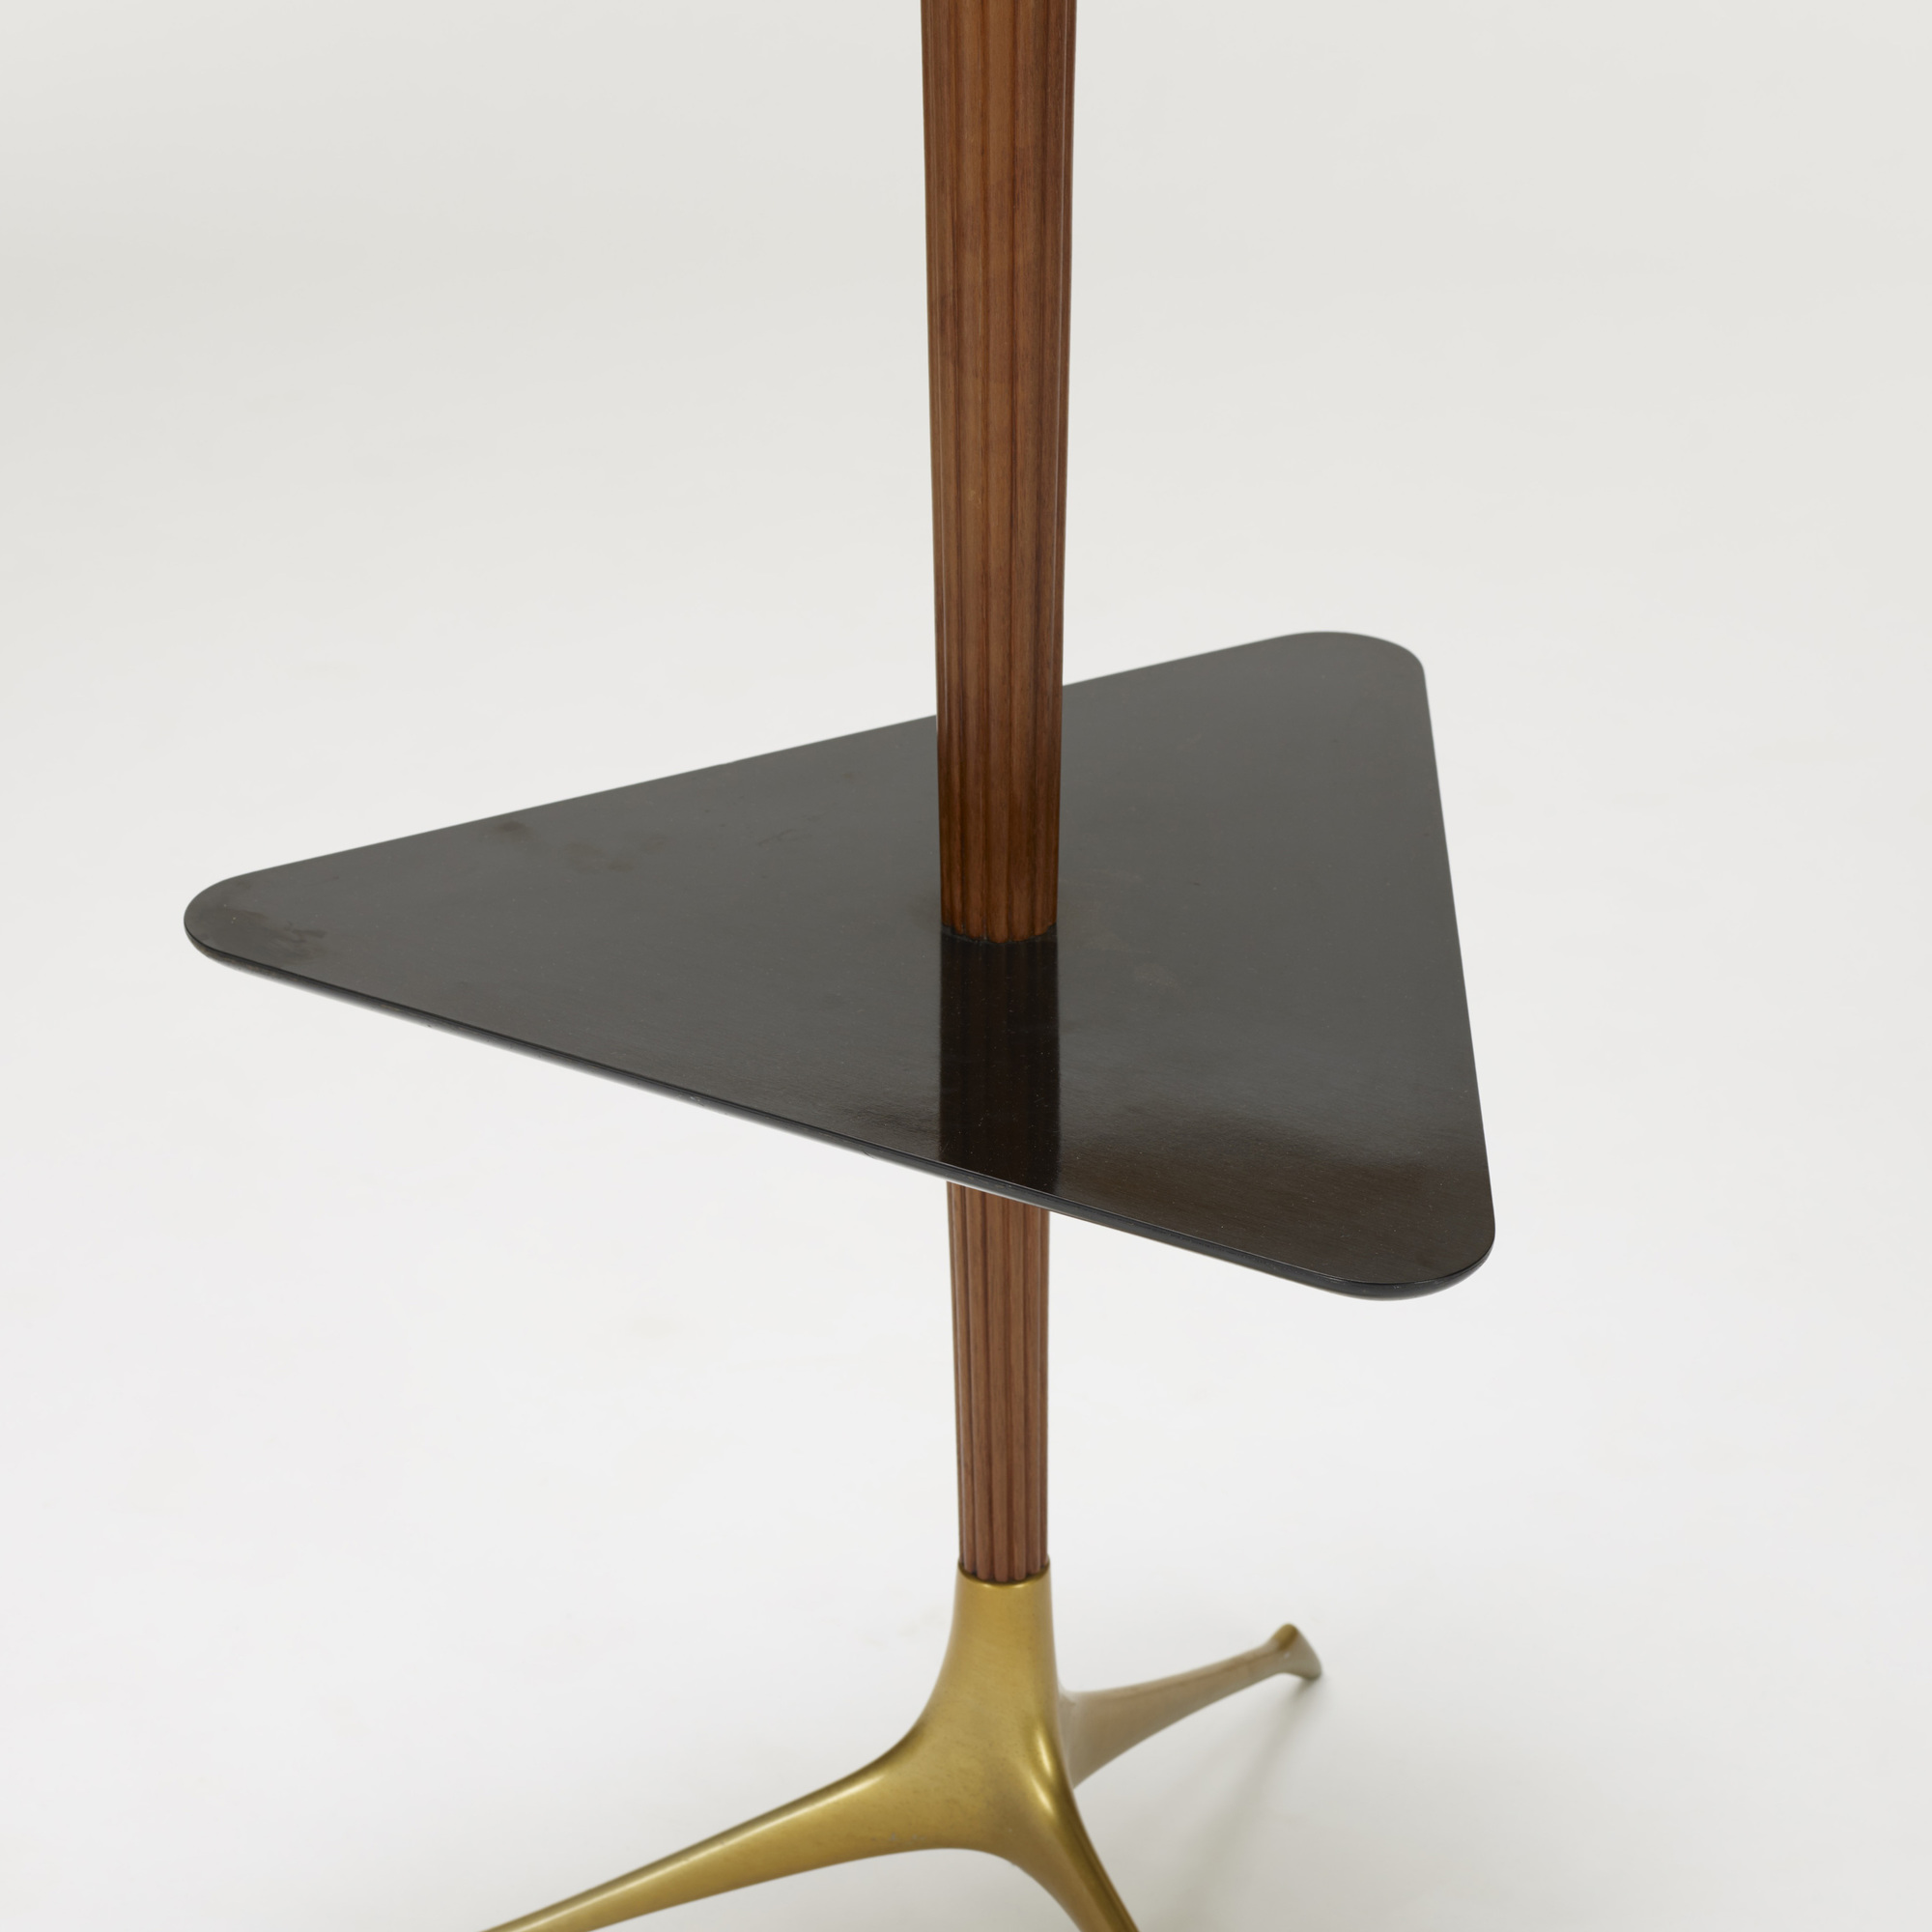 411: Vladimir Kagan / Tri-symmetric lamp table (3 of 3)